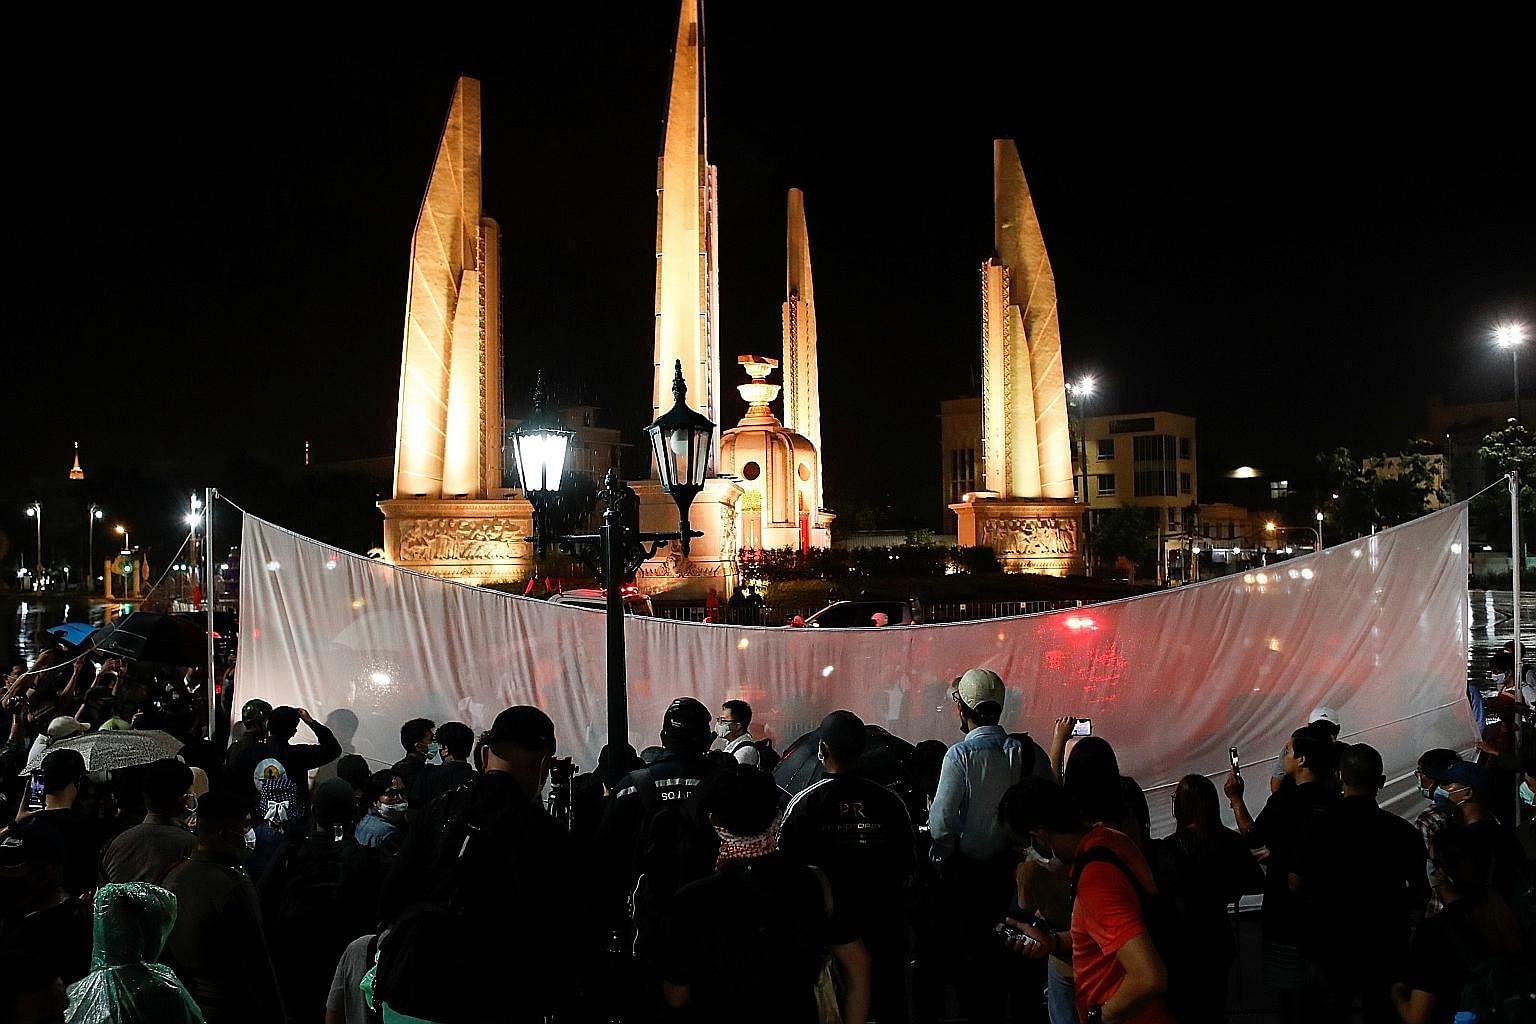 Thai pro-democracy protesters place a white screen in front of the Democracy Monument in Bangkok, calling yesterday for change to the constitution on the 88th anniversary of a revolt that ended Thailand's absolute monarchy.